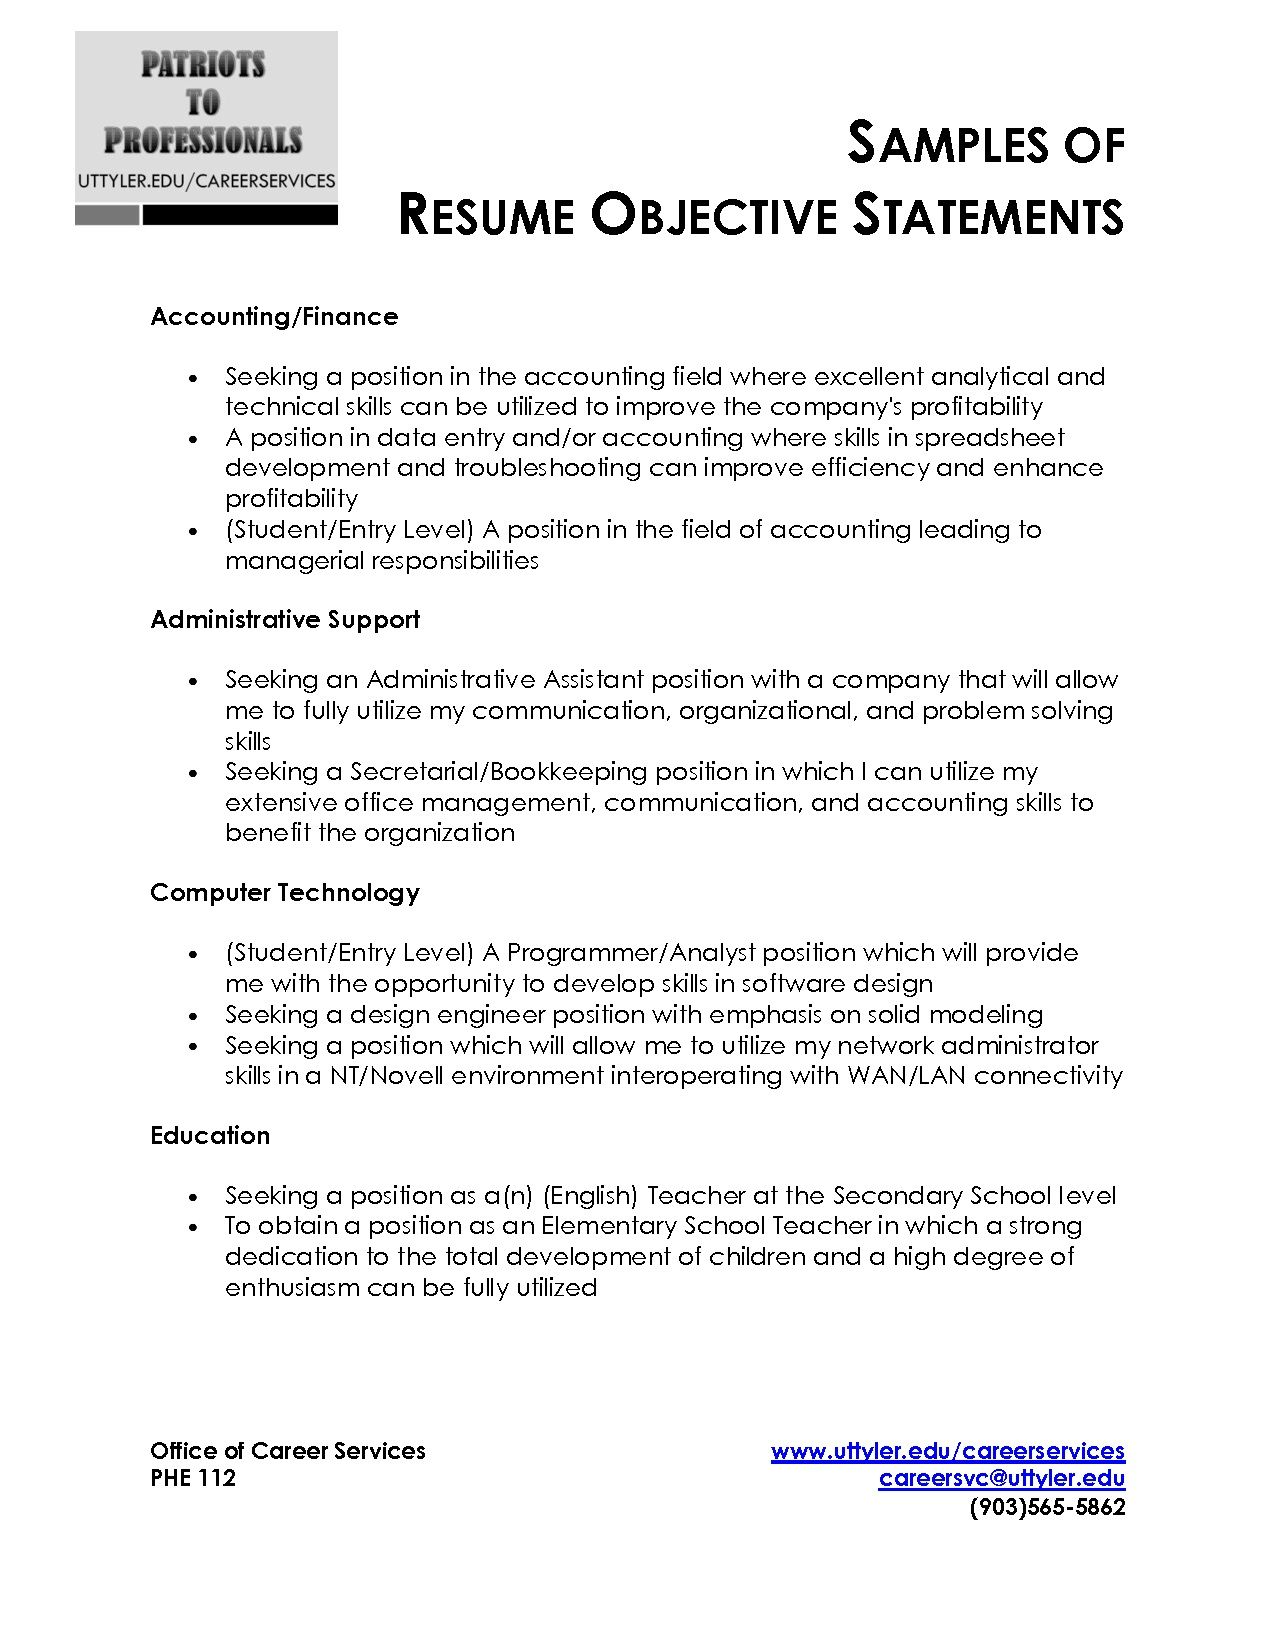 Customer Service Resume Objective Examples Pin By Rachel Franco On Resume Writing Sample Resume